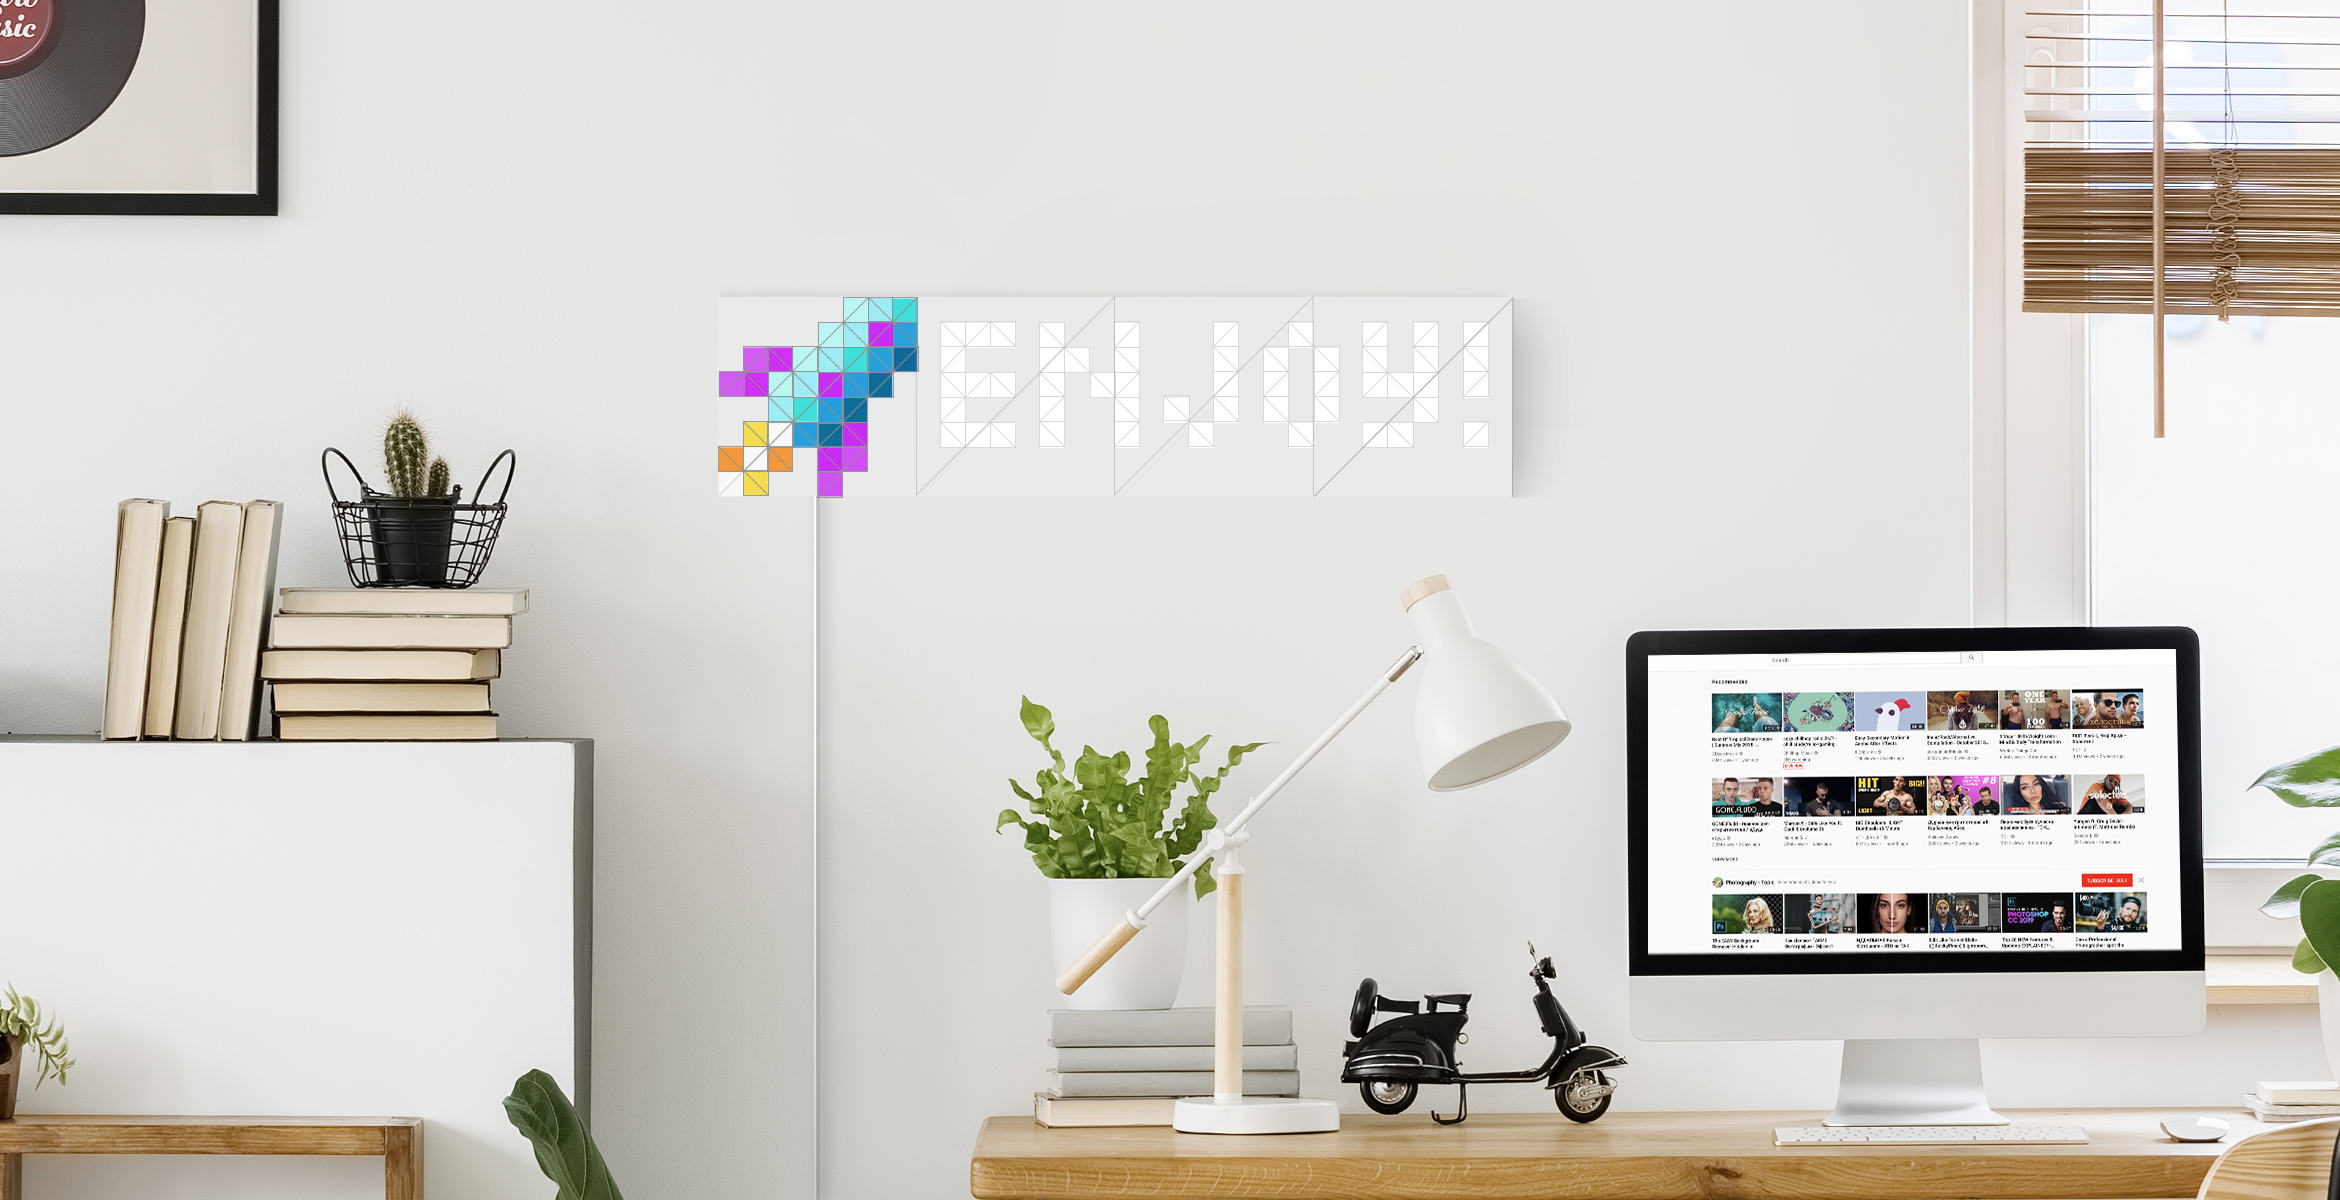 Infoscreen shape, assembled from 16 smart light surfaces, complements desk setup, displays custom message and rocket Sky face